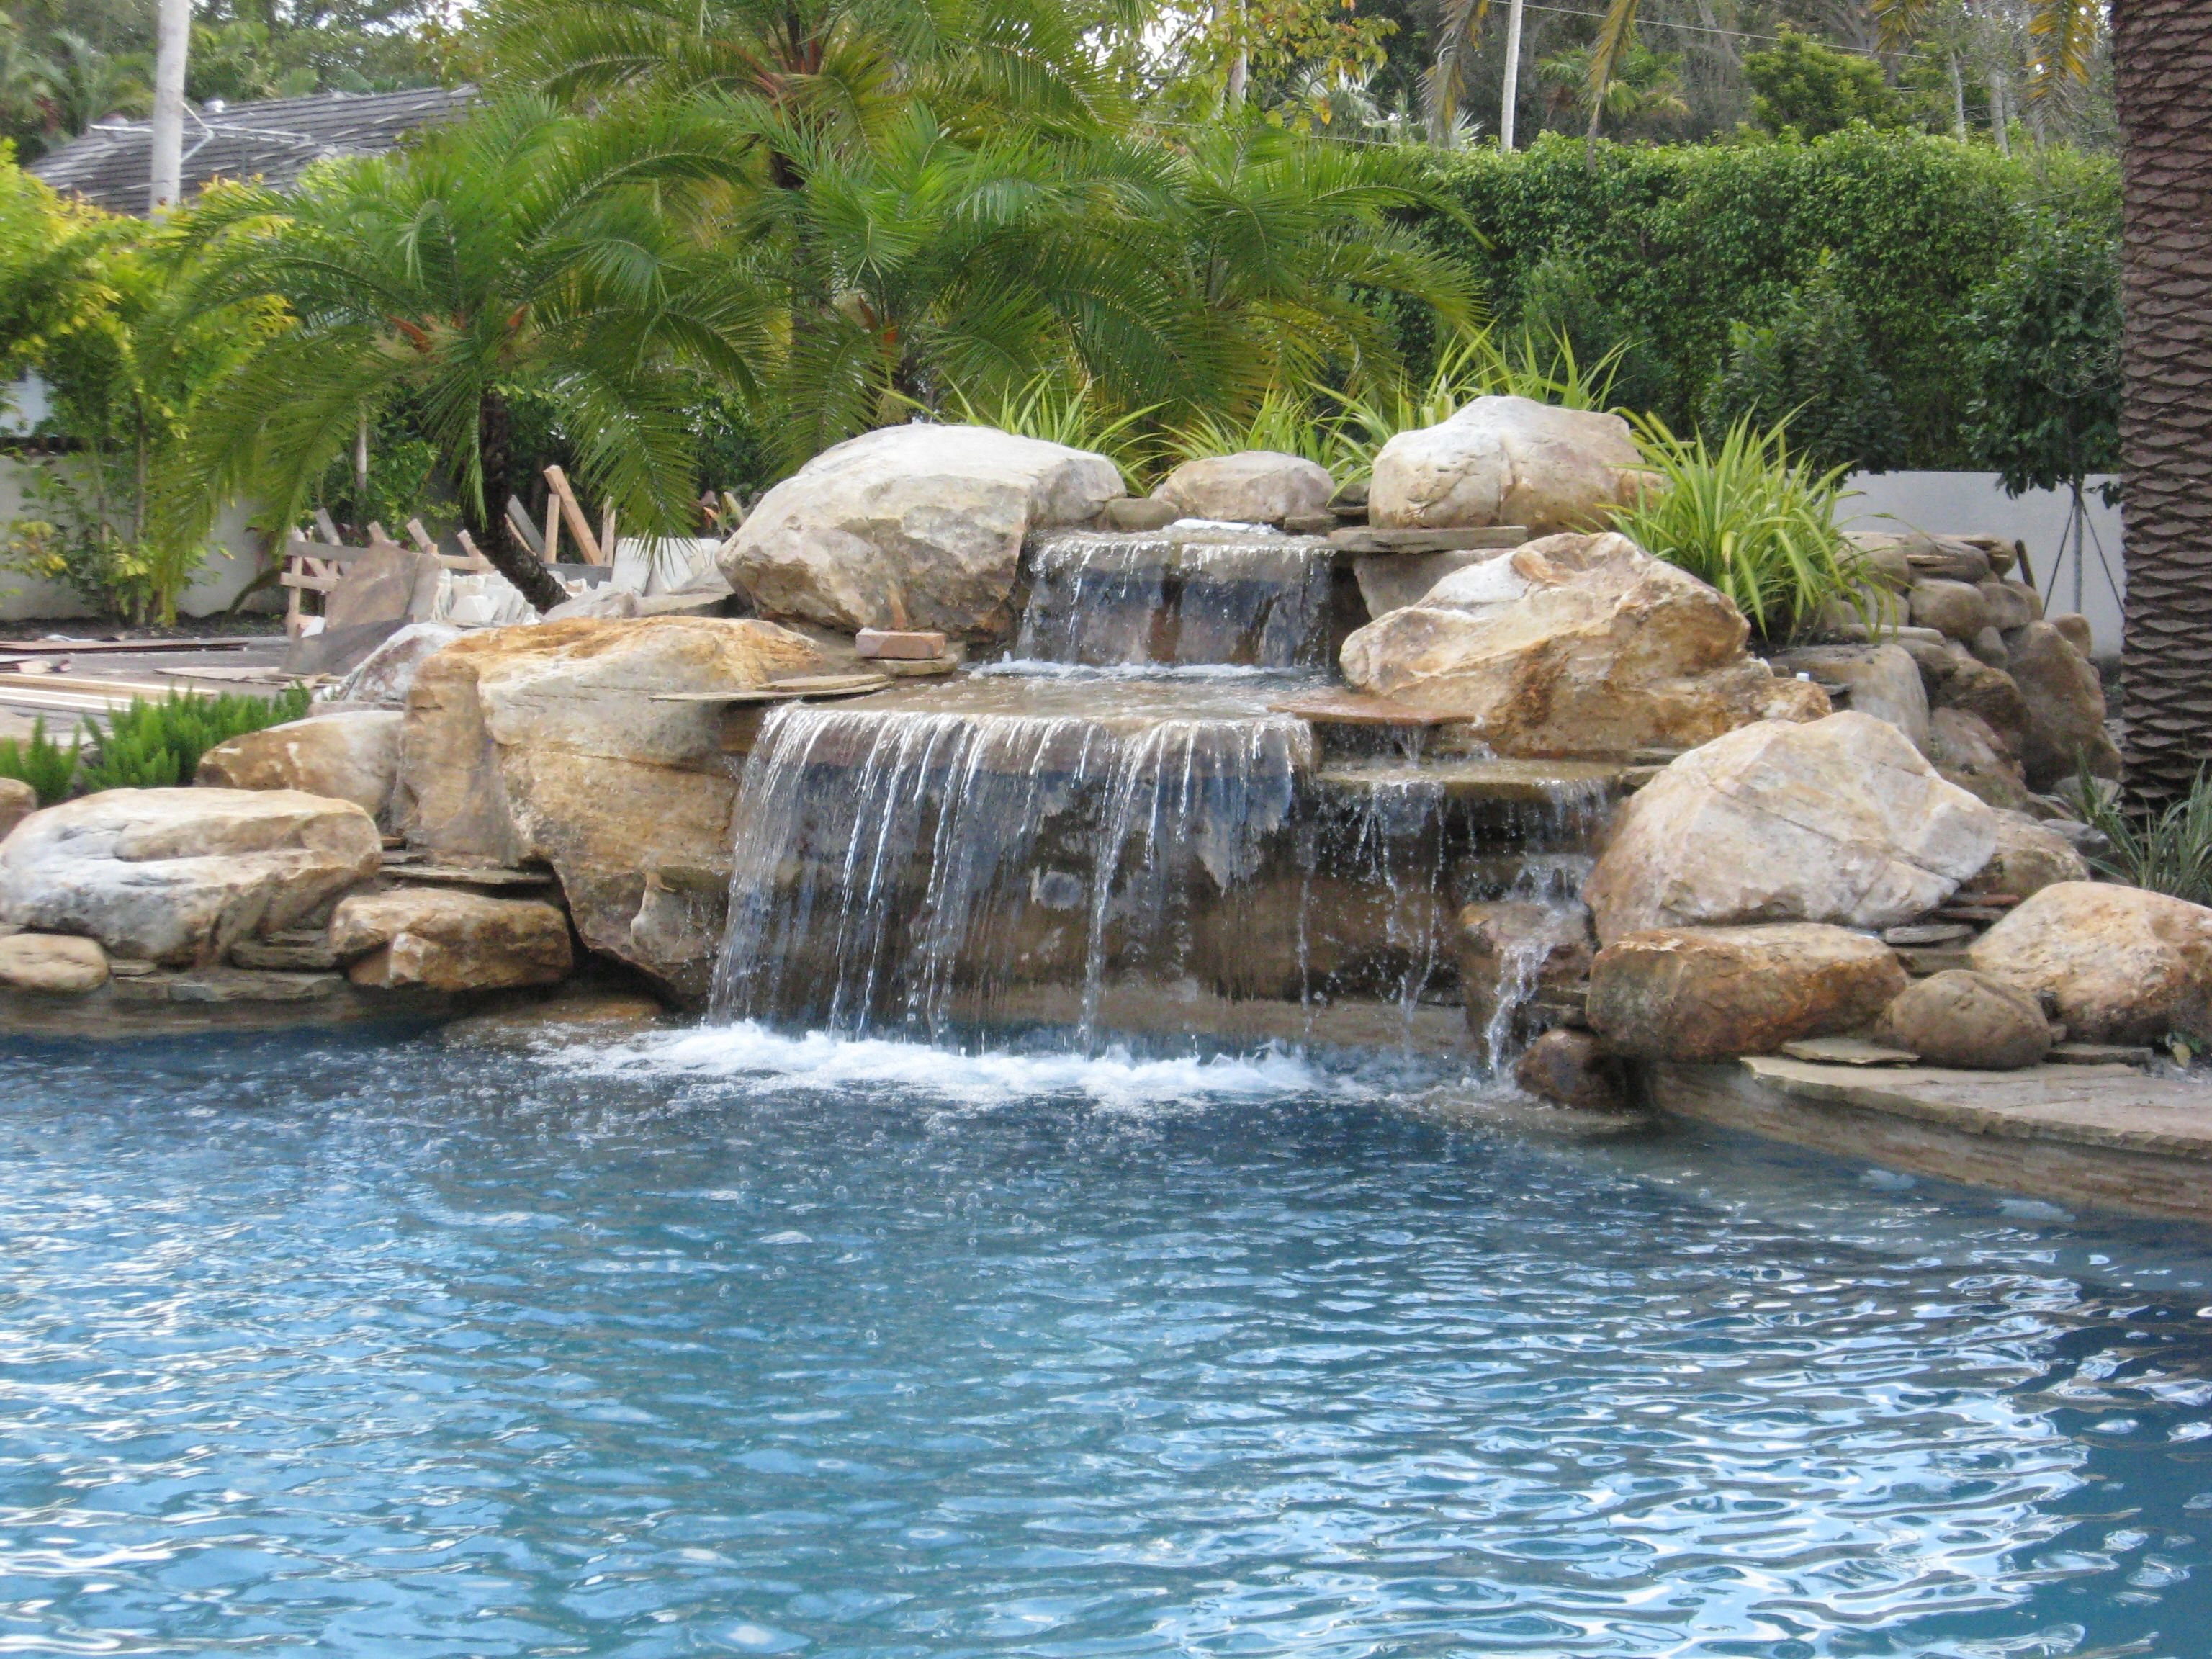 Good Waterfalls Fountains U0026 Gardens Inc.: Listed In Landscape Designers In Fort  Lauderdale, Florida